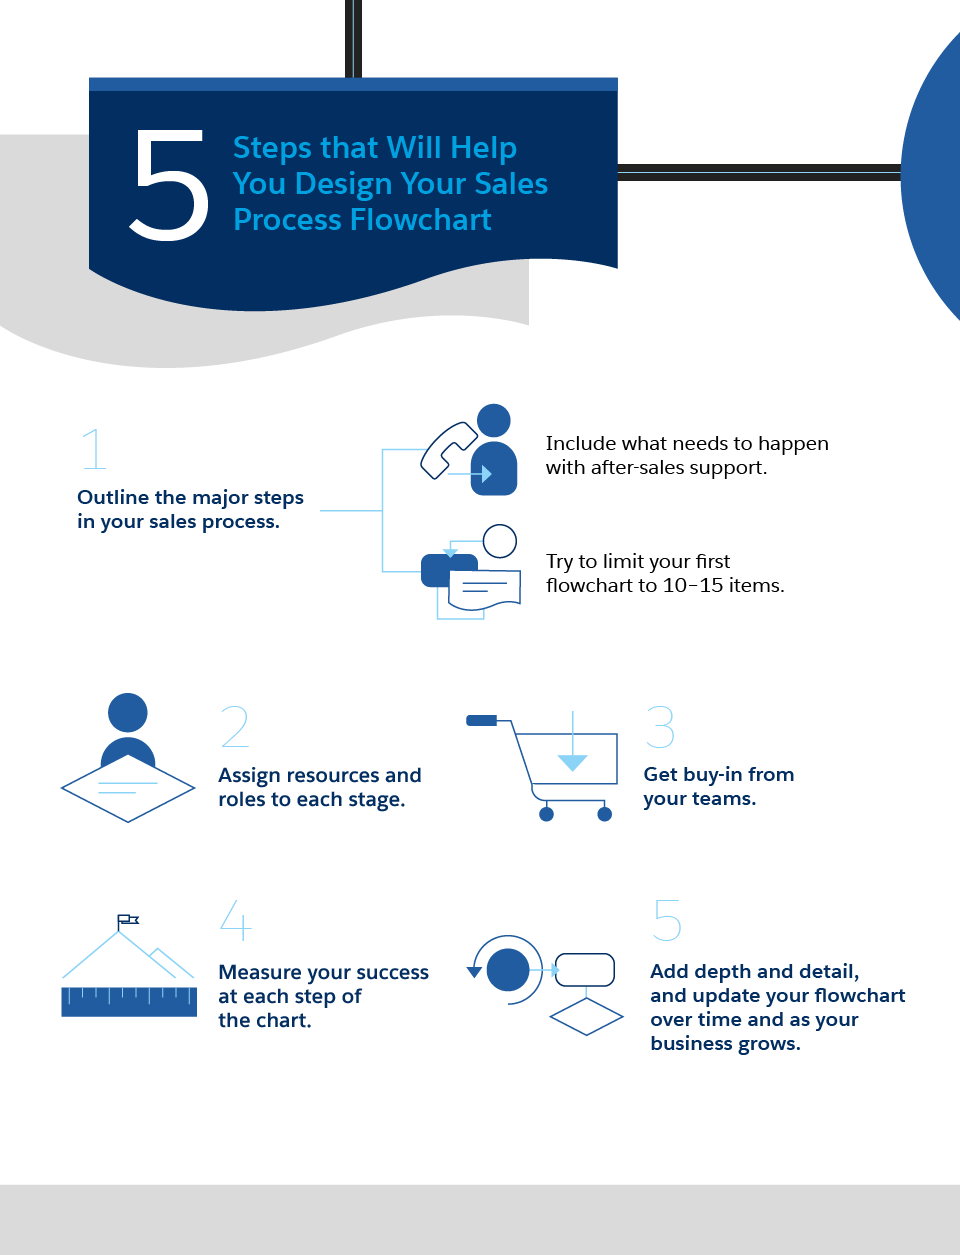 How To Build A Sales Process Flowchart For Smbs Salesforce Com